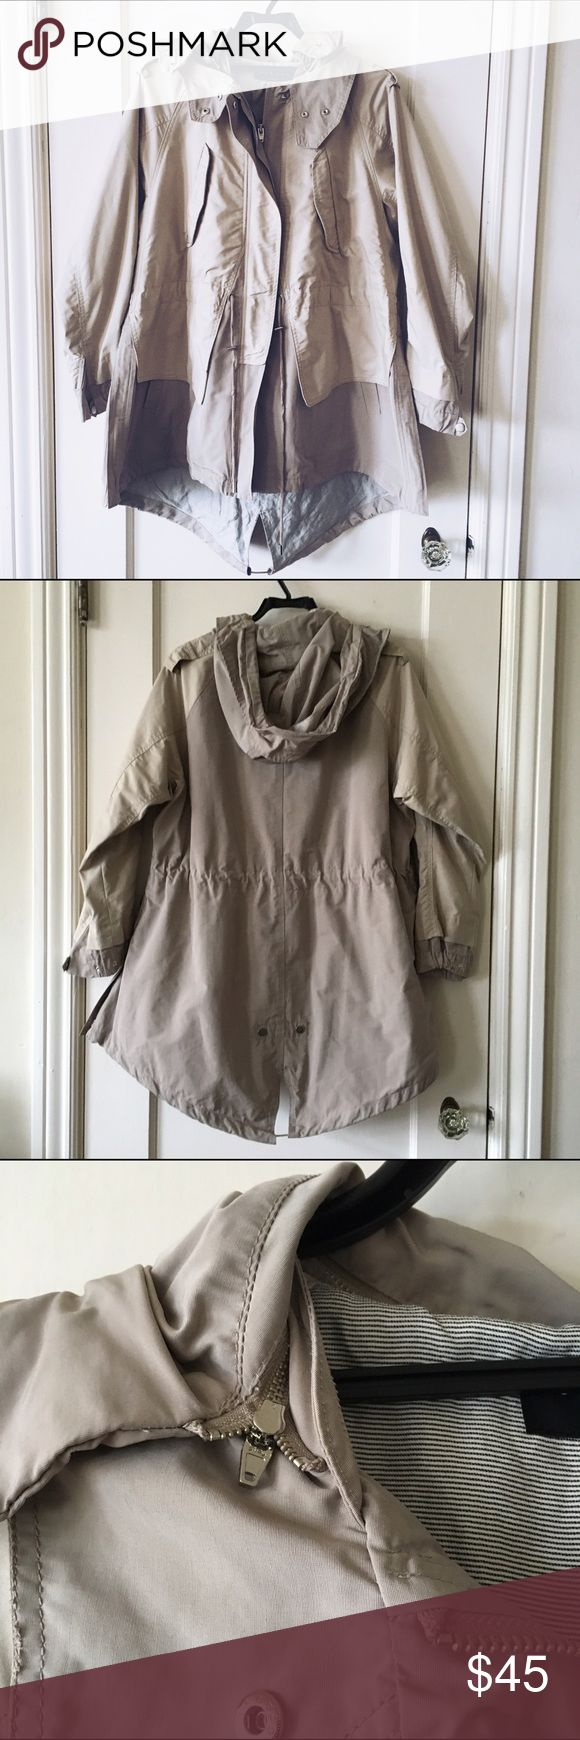 Sisley Tan Rain Parka Jacket Great jacket to use in rain or snow. Very heavy and has a removable hood. In great condition, just a little too big for me. Made by Sisley and purchased abroad. Size 44 Fits like a large medium. Sisley Jackets & Coats Trench Coats